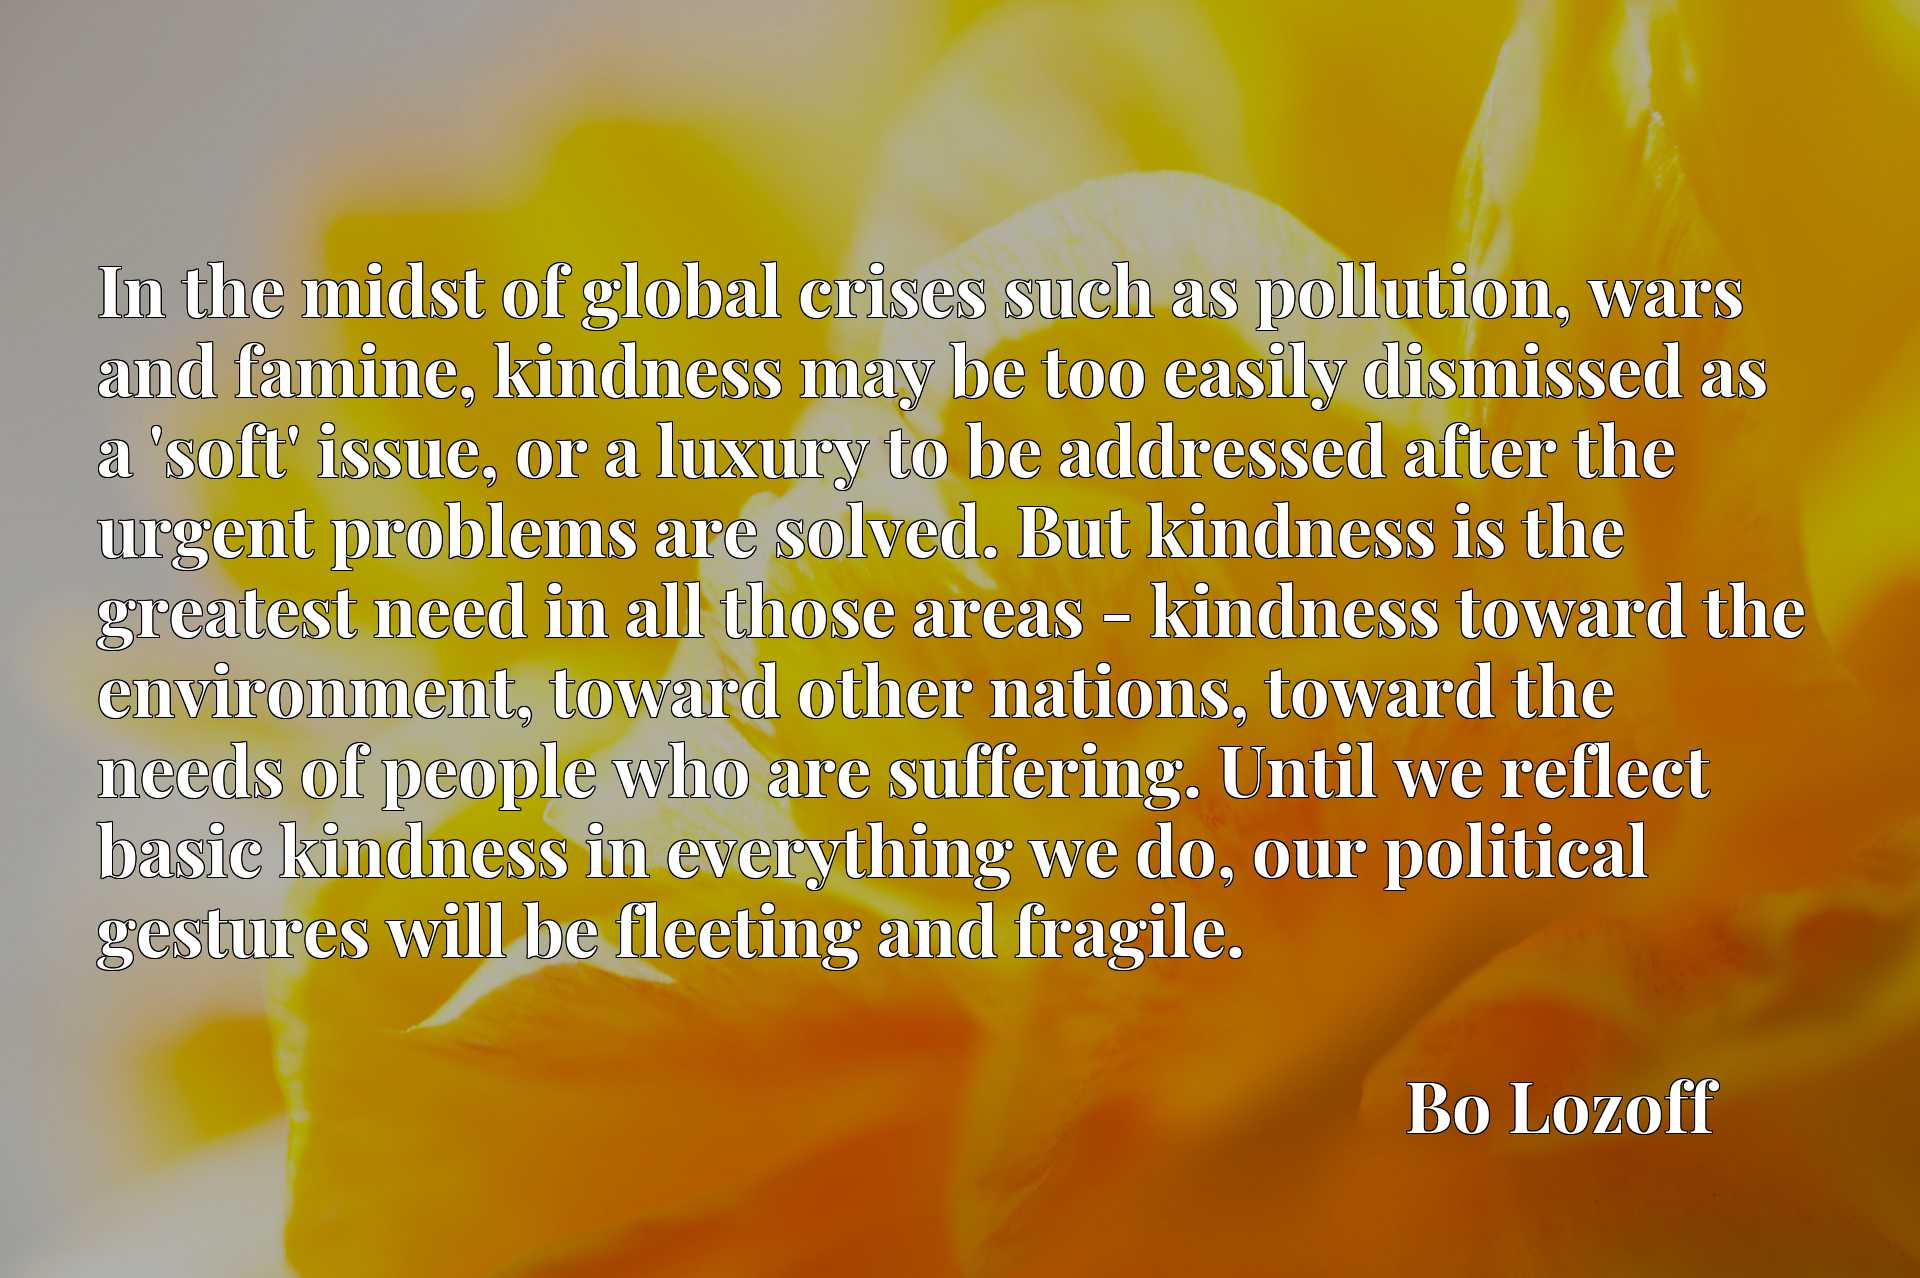 In the midst of global crises such as pollution, wars and famine, kindness may be too easily dismissed as a 'soft' issue, or a luxury to be addressed after the urgent problems are solved. But kindness is the greatest need in all those areas - kindness toward the environment, toward other nations, toward the needs of people who are suffering. Until we reflect basic kindness in everything we do, our political gestures will be fleeting and fragile.